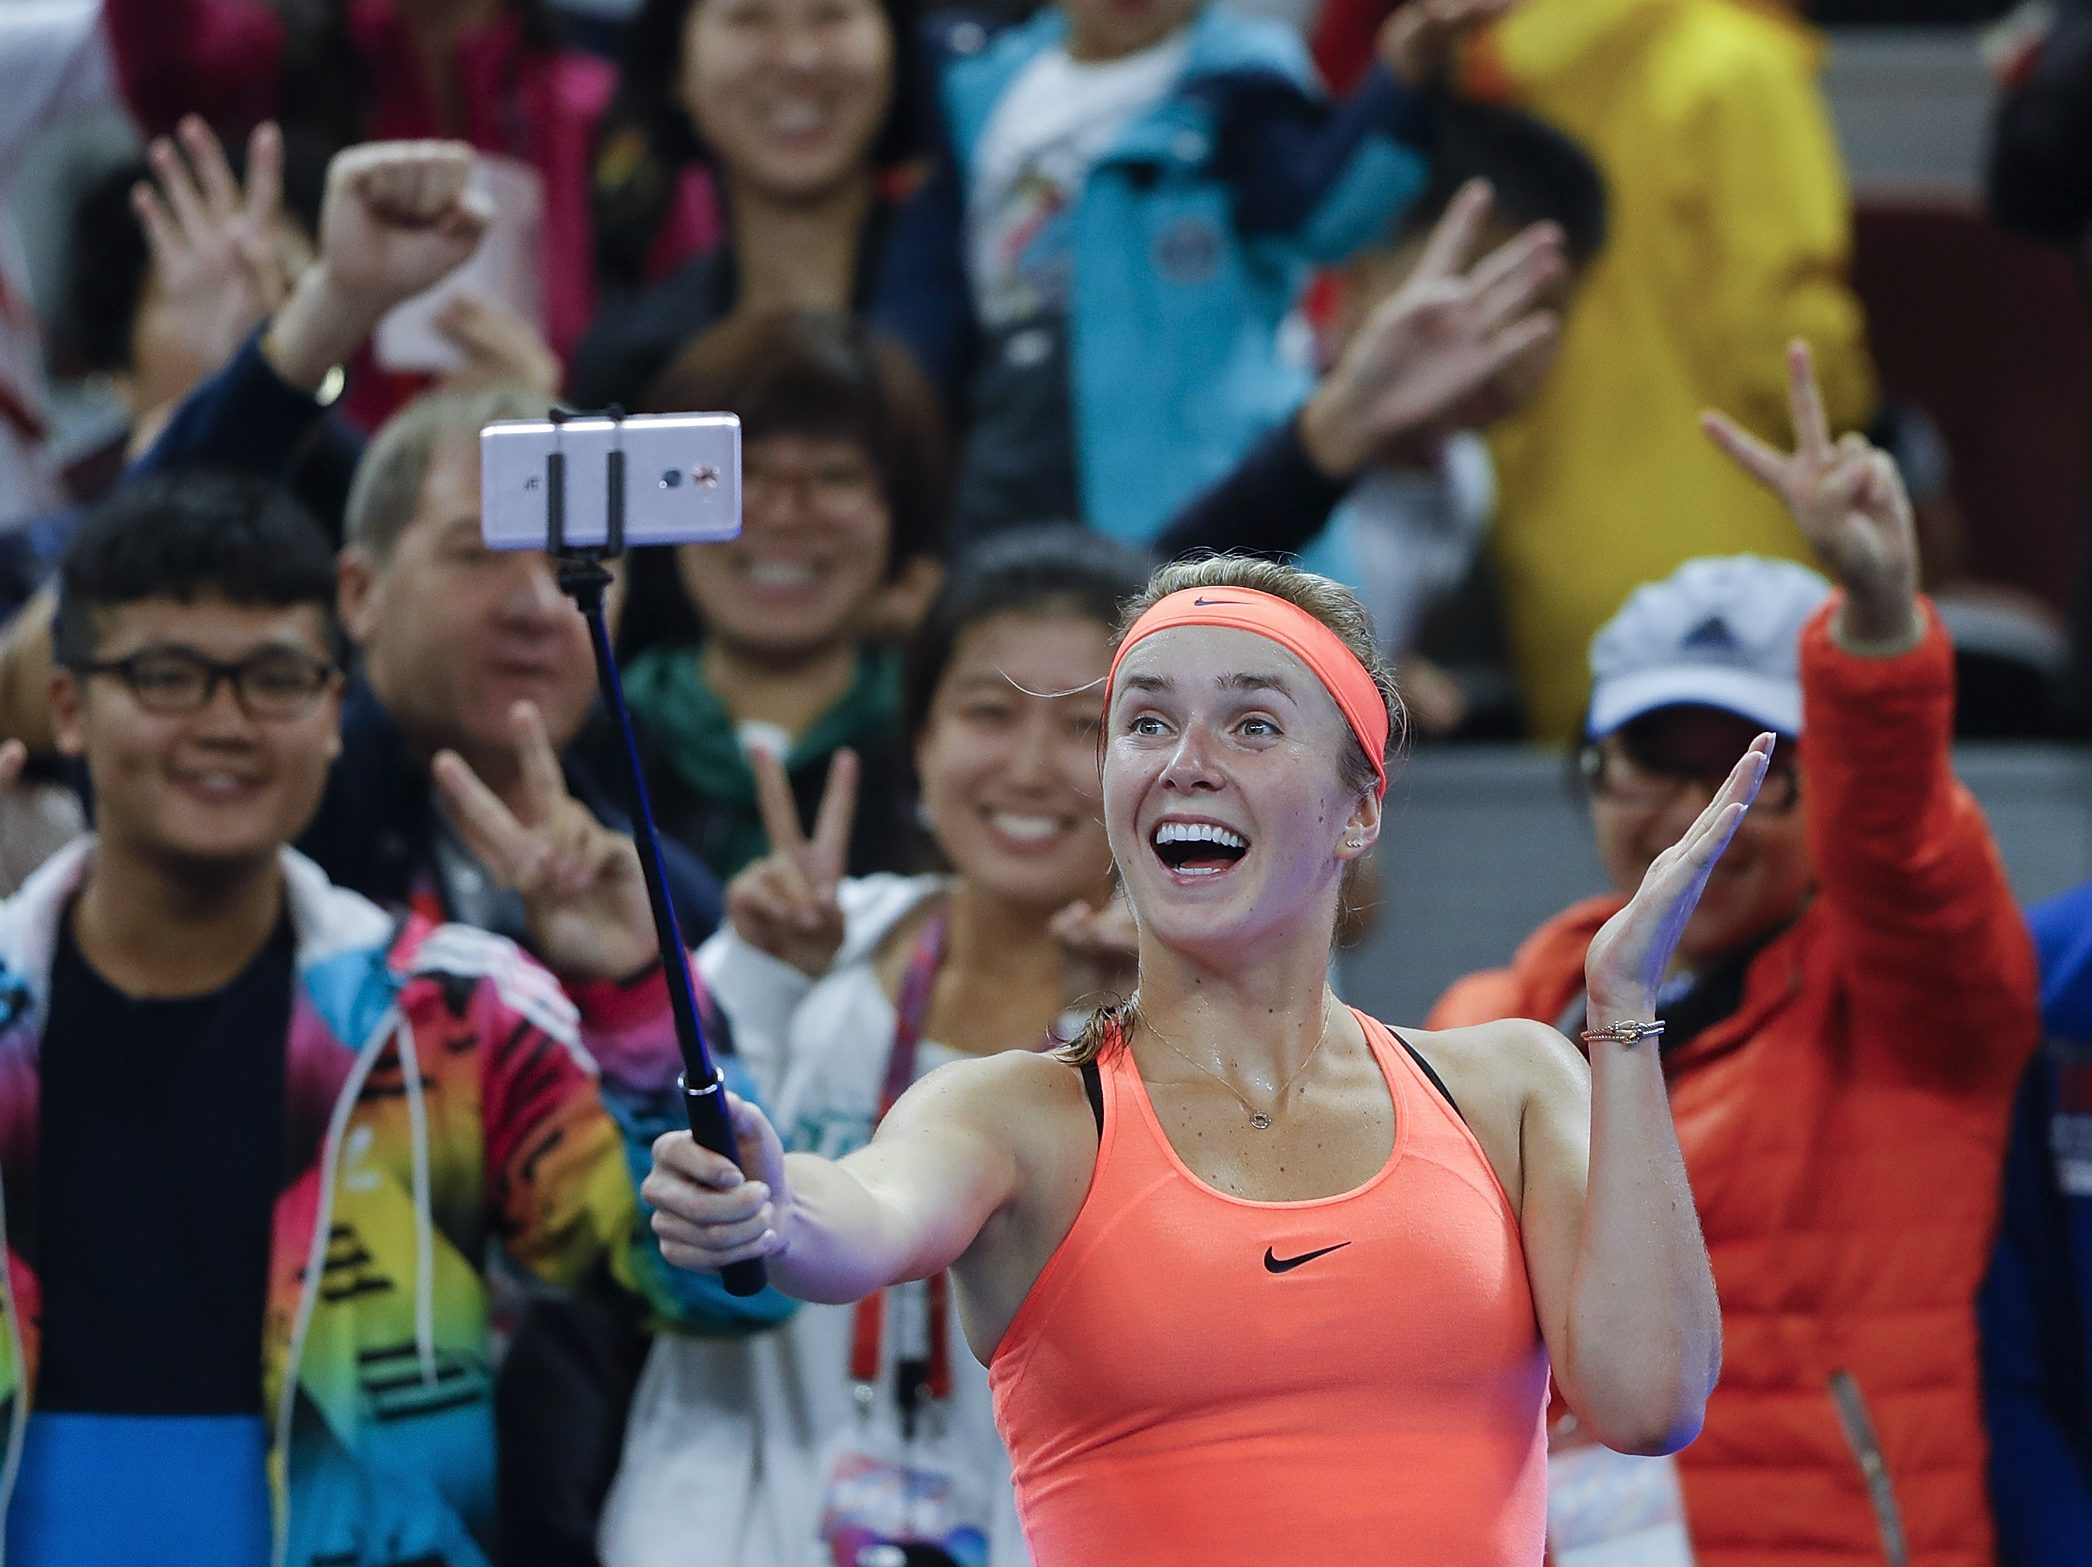 BEIJING, CHINA - OCTOBER 06:  Elina Svitolina of Ukraine takes a selfie after winning the Women's singles third round match against Angelique Kerber of Germany on day six of the 2016 China Open at the China National Tennis Centre on October 6, 2016 in Beijing, China.  (Photo by Lintao Zhang/Getty Images)